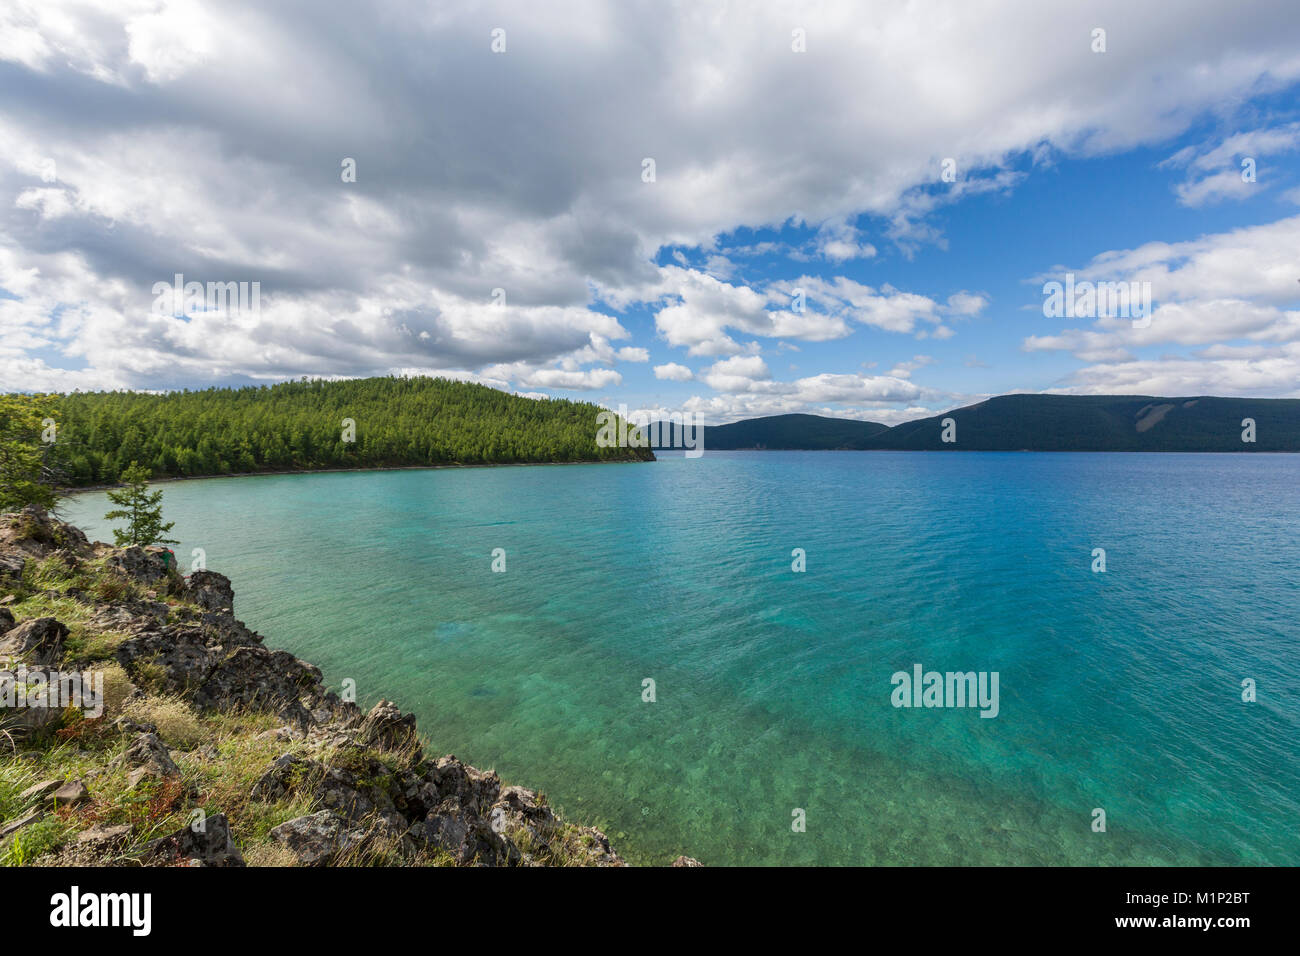 Hovsgol Lake, Hovsgol province, Mongolia, Central Asia, Asia - Stock Image